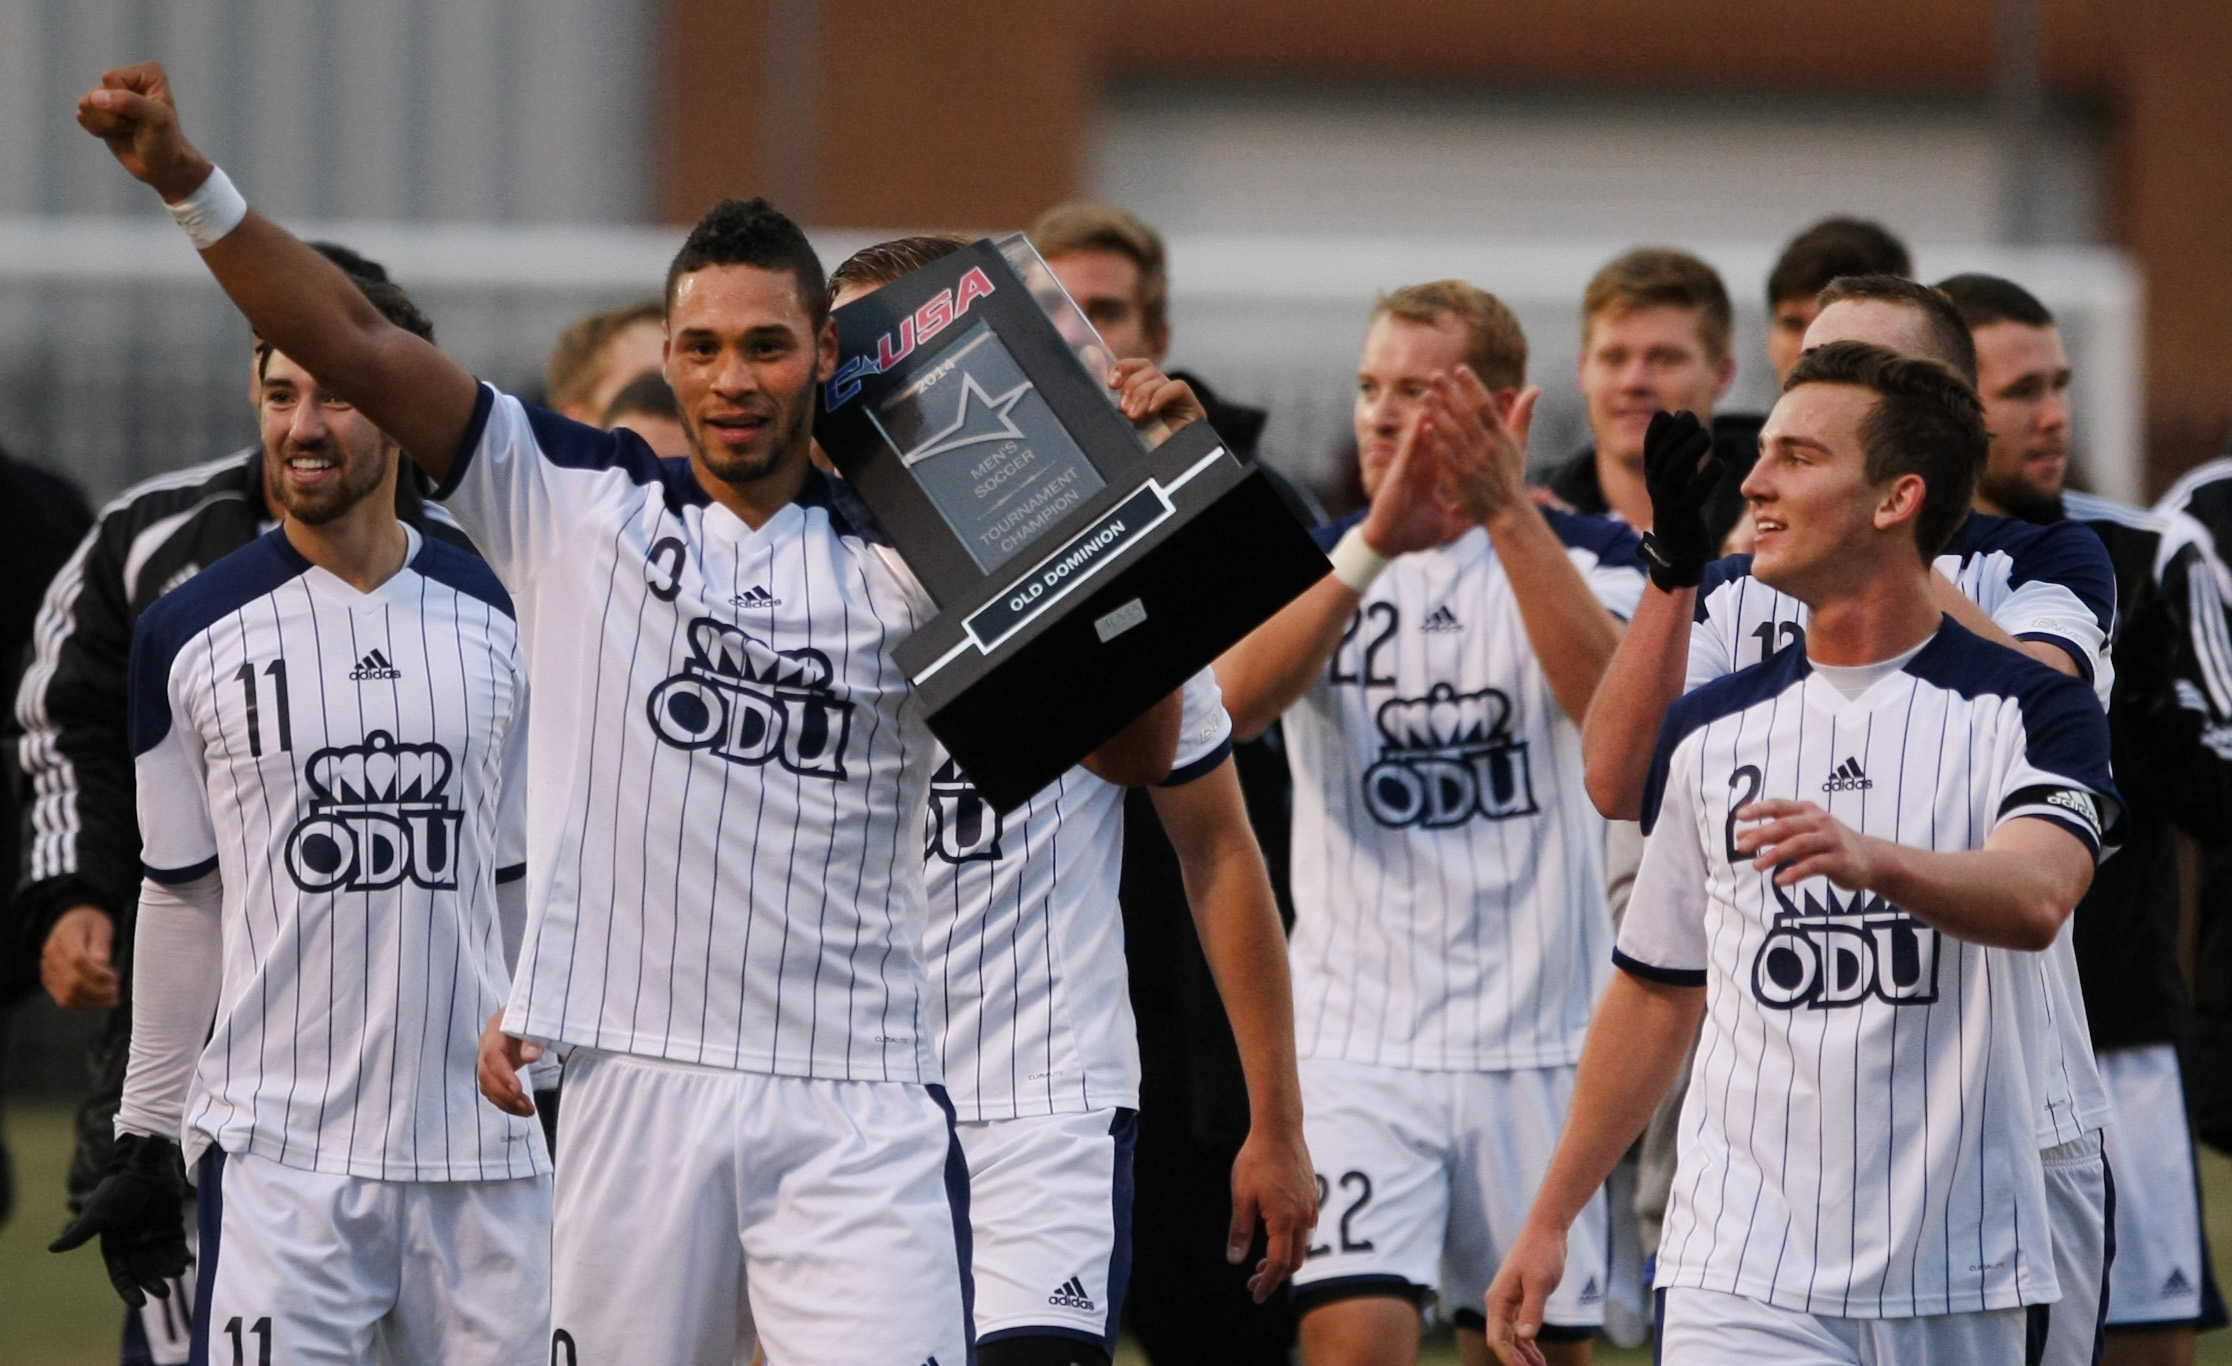 Old Dominion players, led by Sidney Rivera (with arm out) celebrate after ODU's 2-1 win over University of South Carolina to claim the Conference USA Men's Soccer Final, Sunday, Nov. 16, 2014 at ODU in Norfolk.  (Jason Hirschfeld | For The Virginian-Pilot)